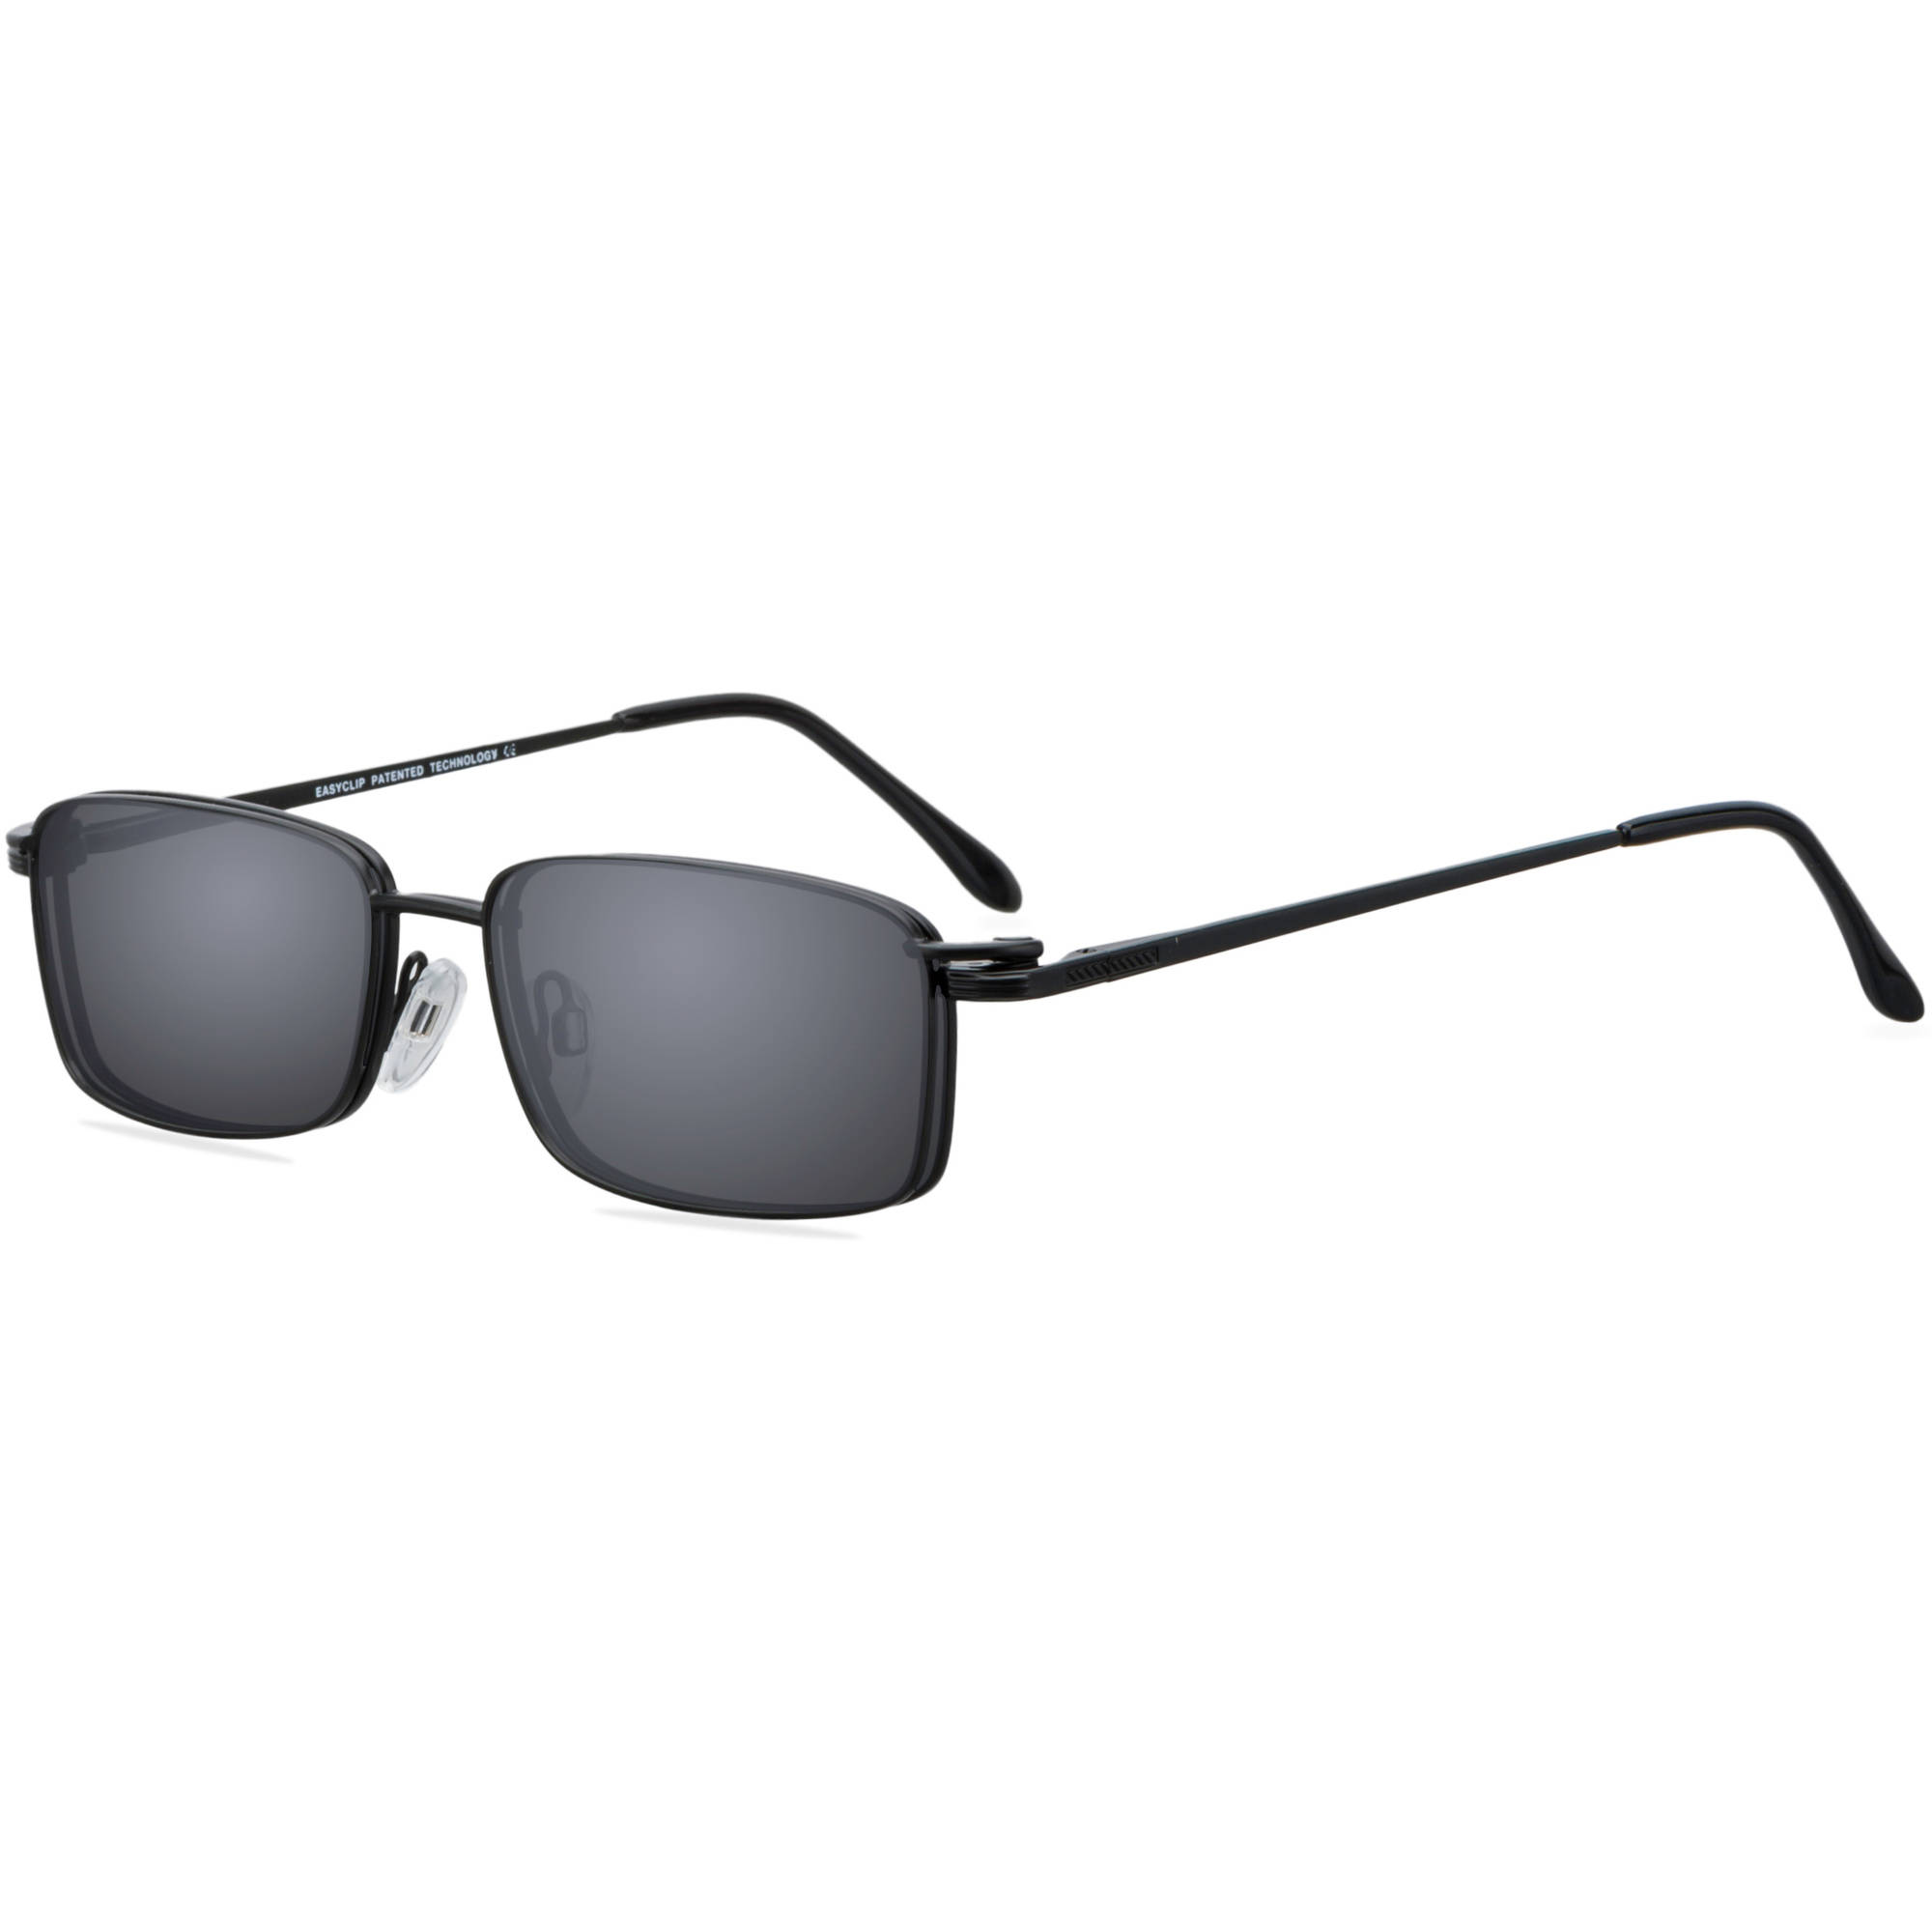 Magnetic Sunglasses For Prescription  easyclip mens prescription glasses ec172 black com